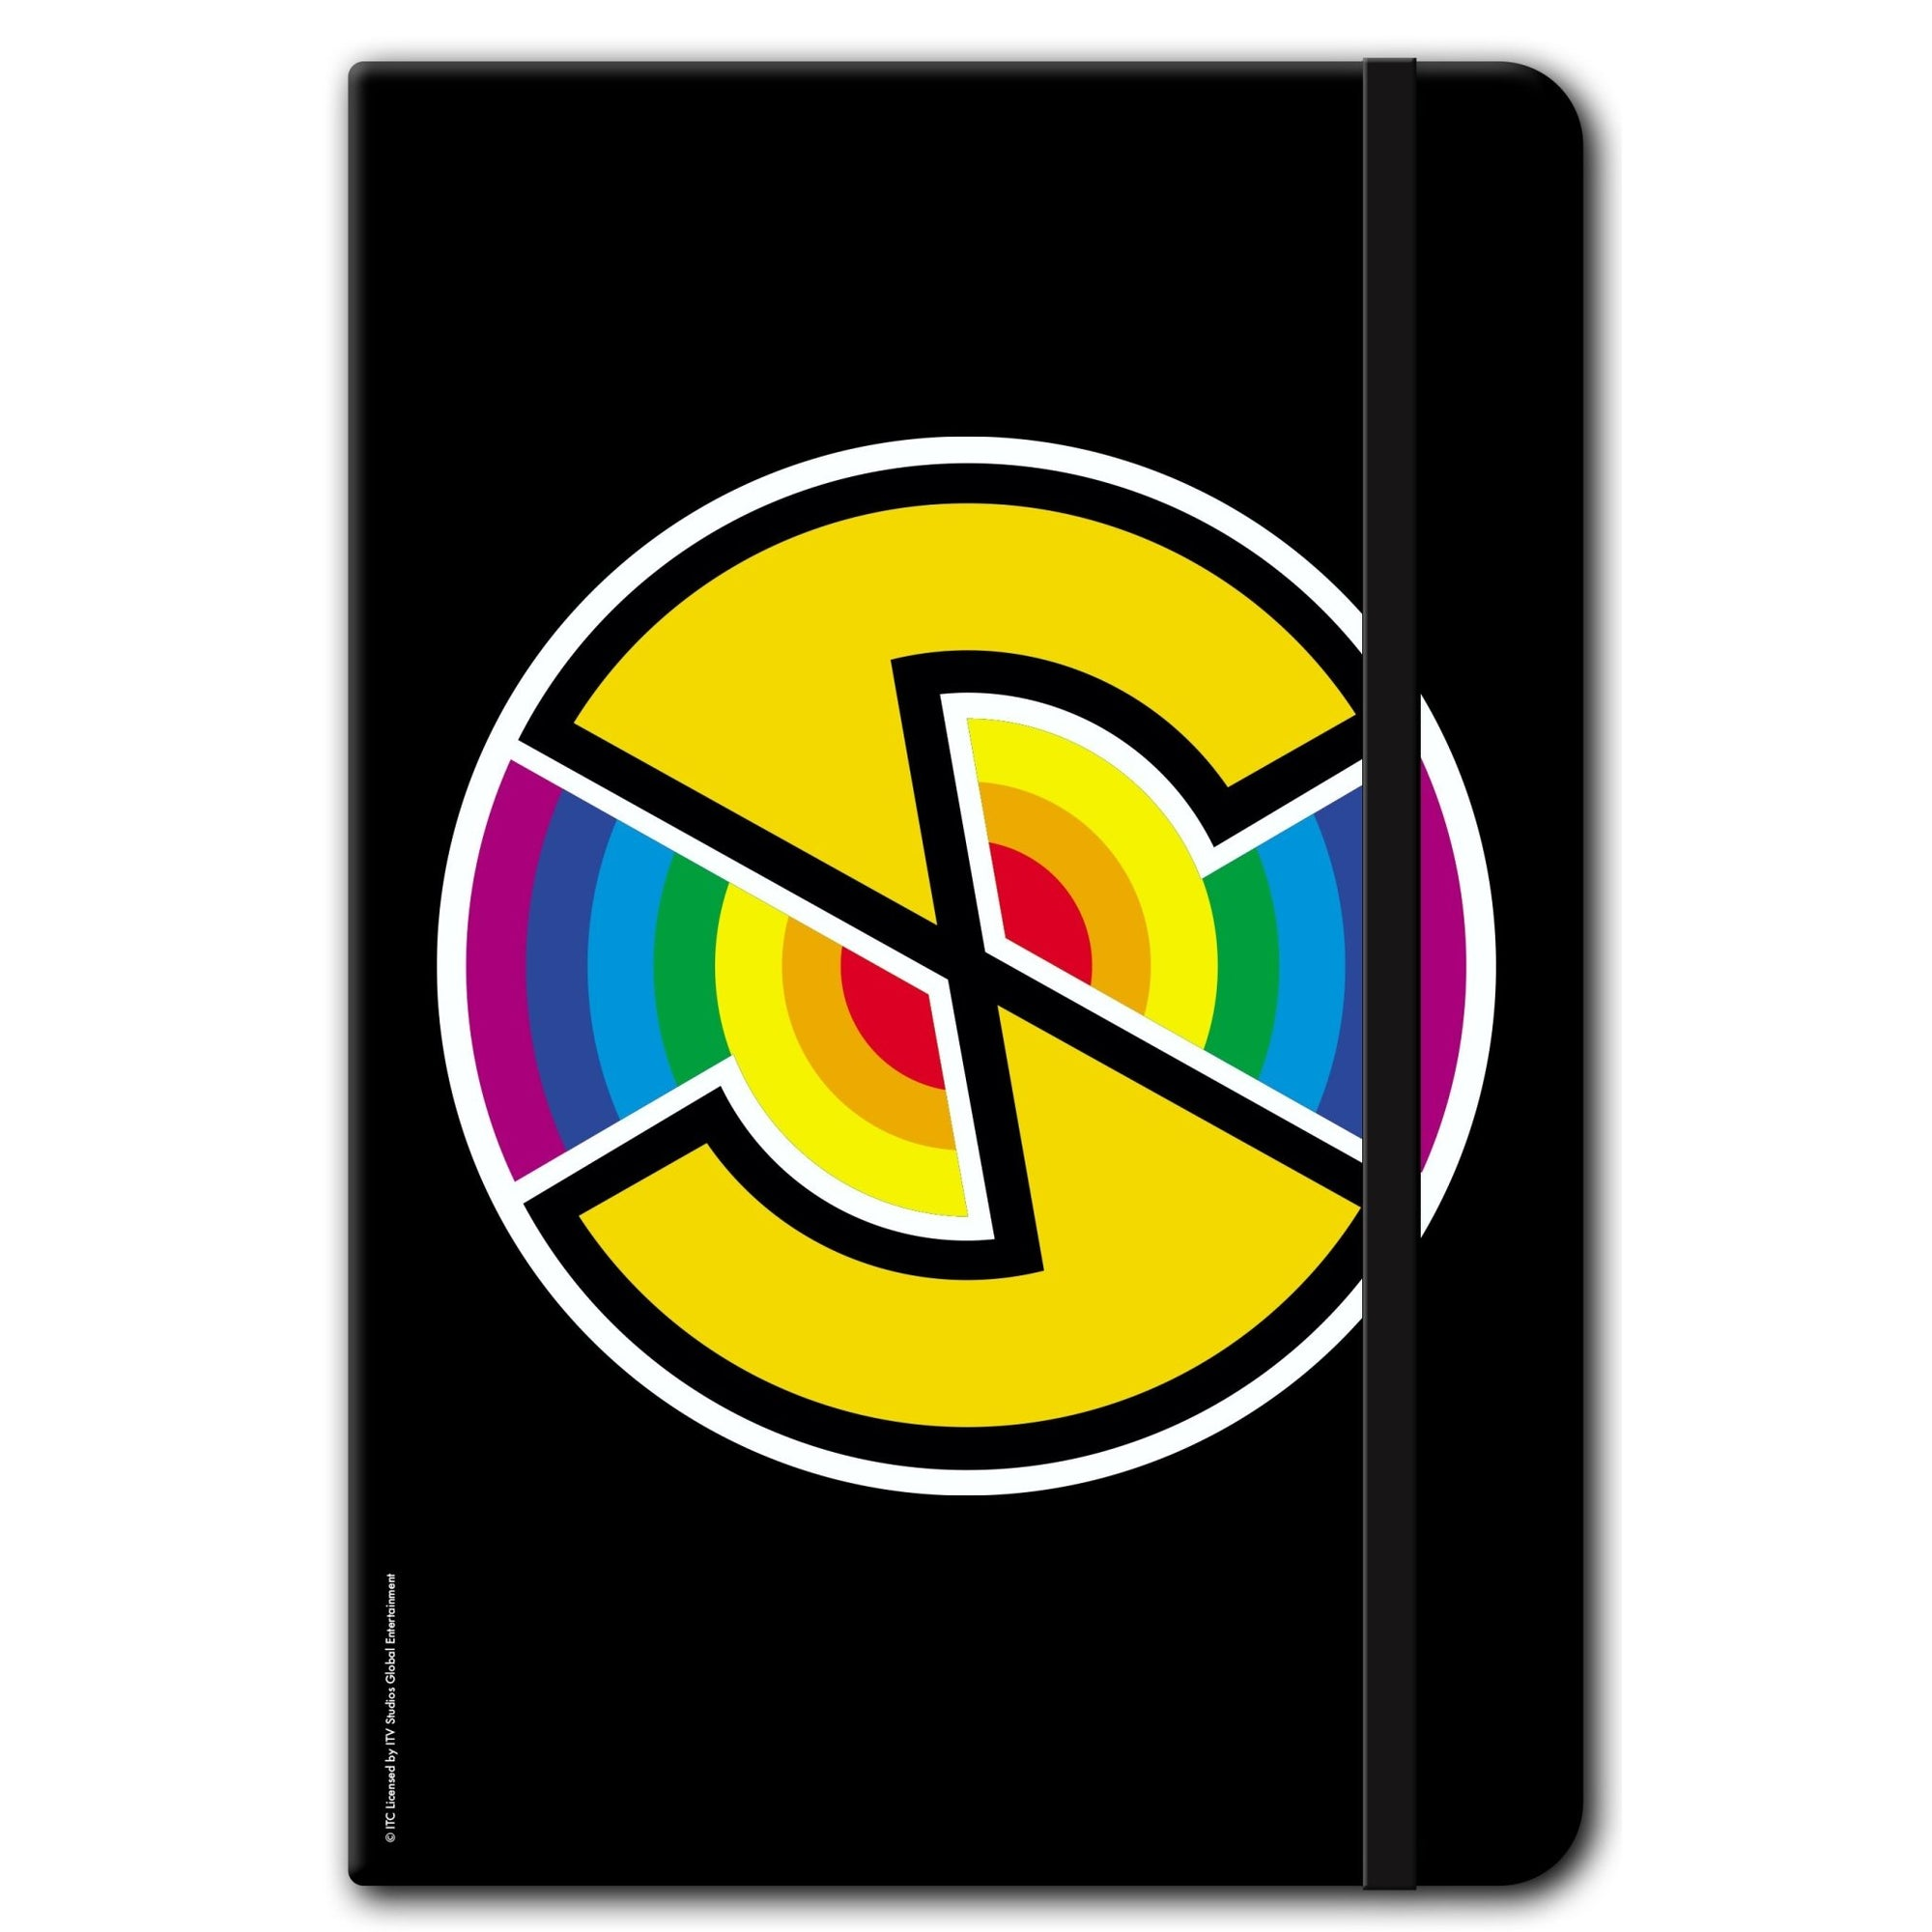 Captain Scarlet Spectrum Logo Notebook [Official & Exclusive] - The Gerry Anderson Store